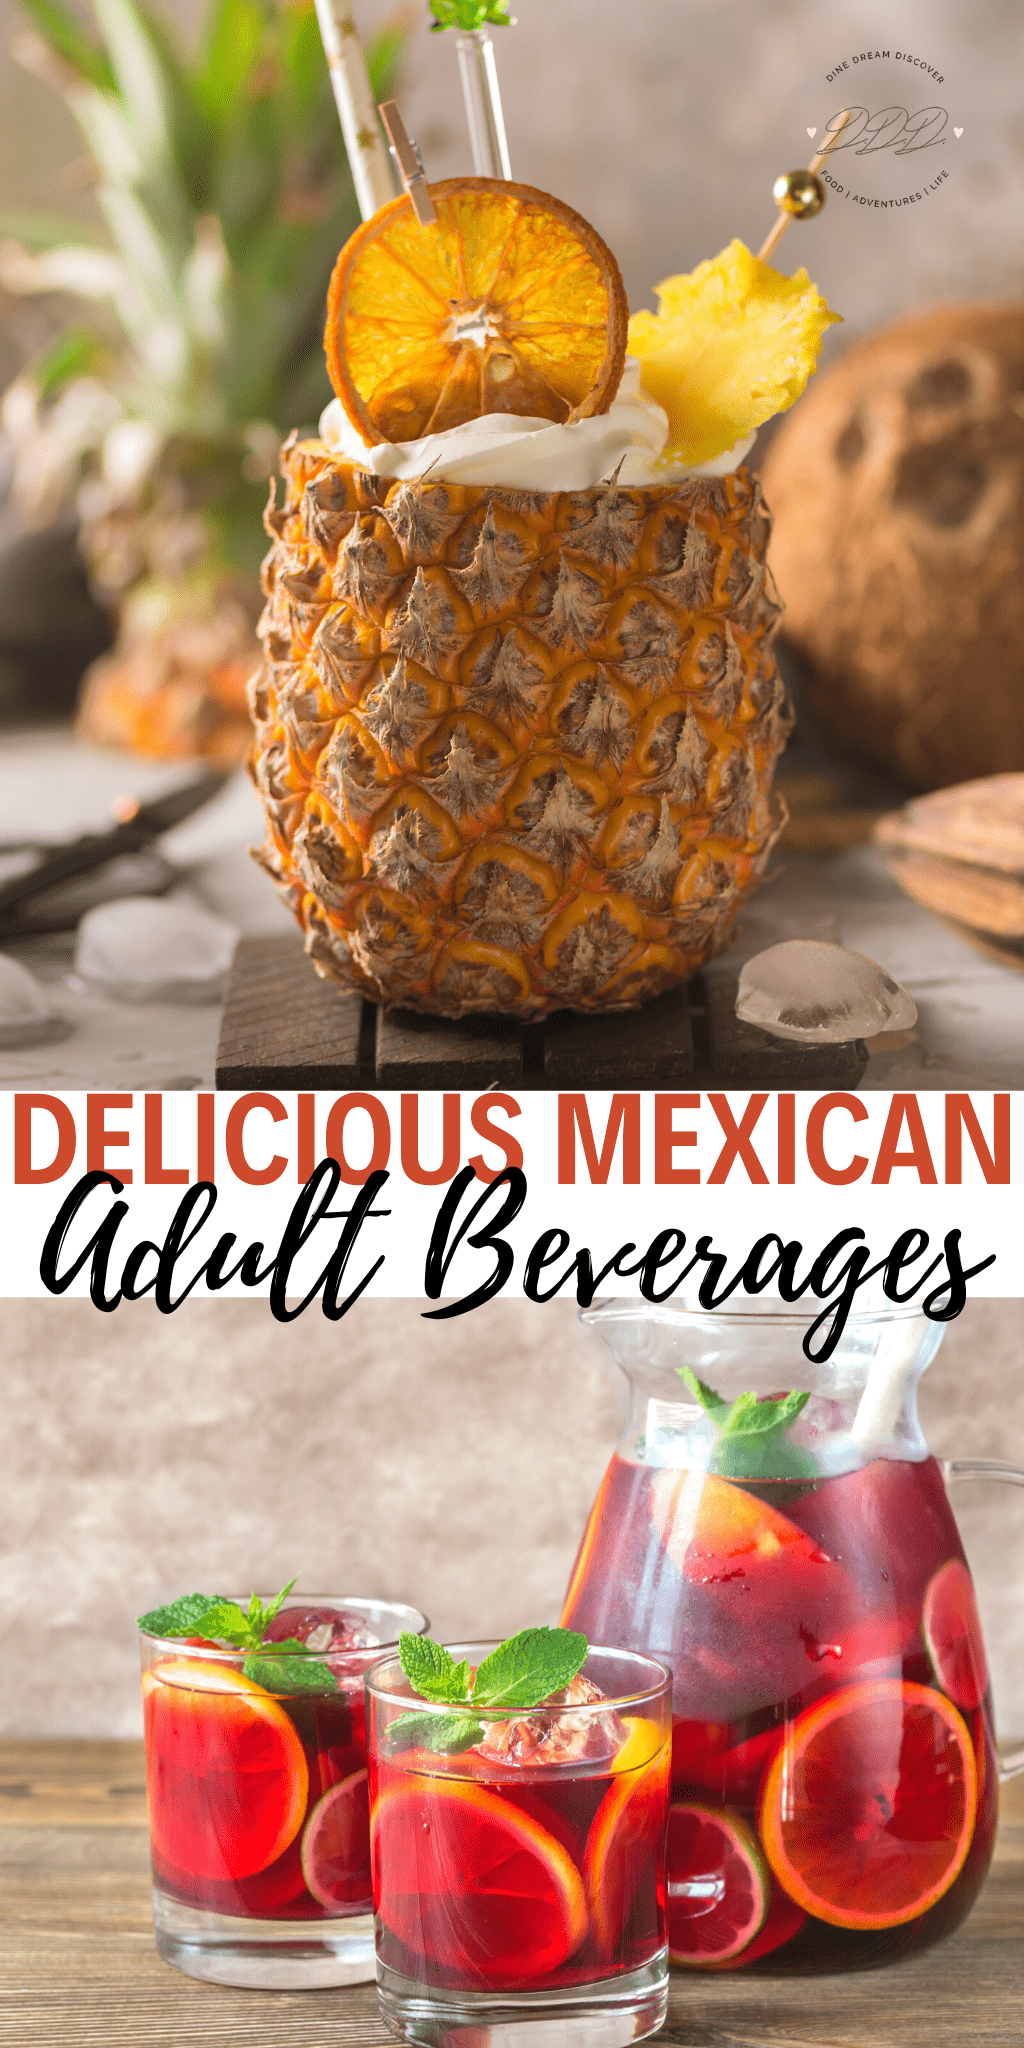 Beyond The Margarita, Delicious Mexican Alcoholic Beverages